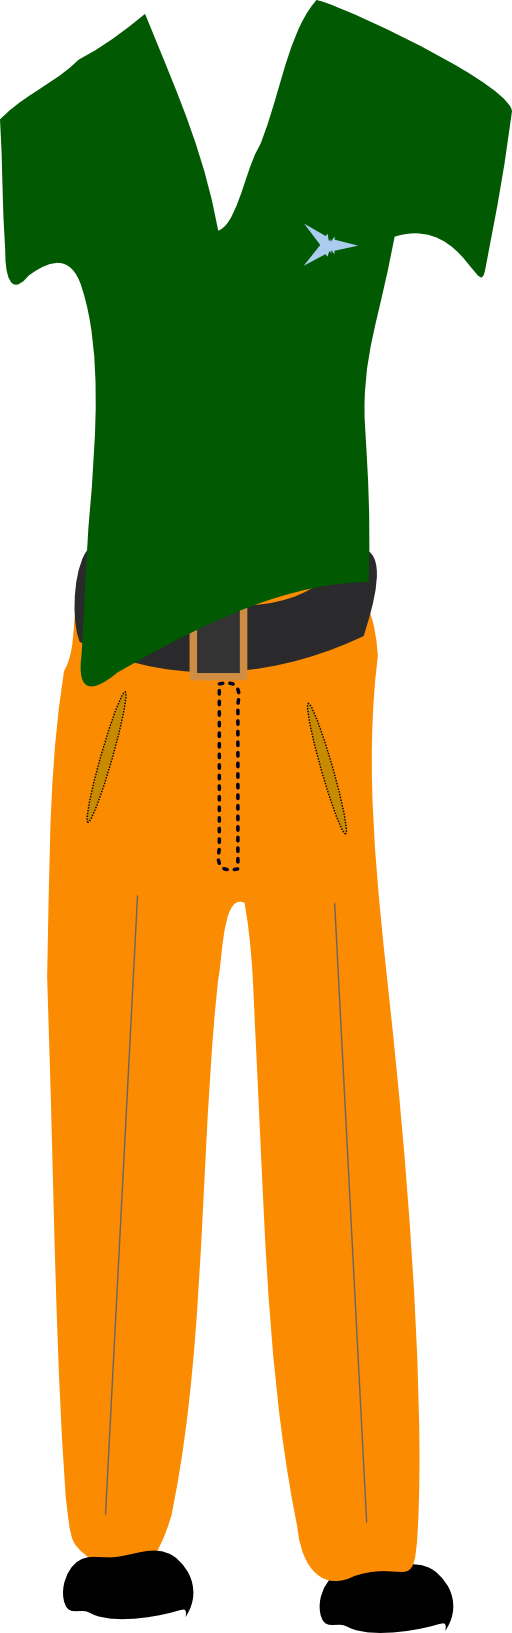 man clothes clipart i2clipart   royalty free public domain clipart